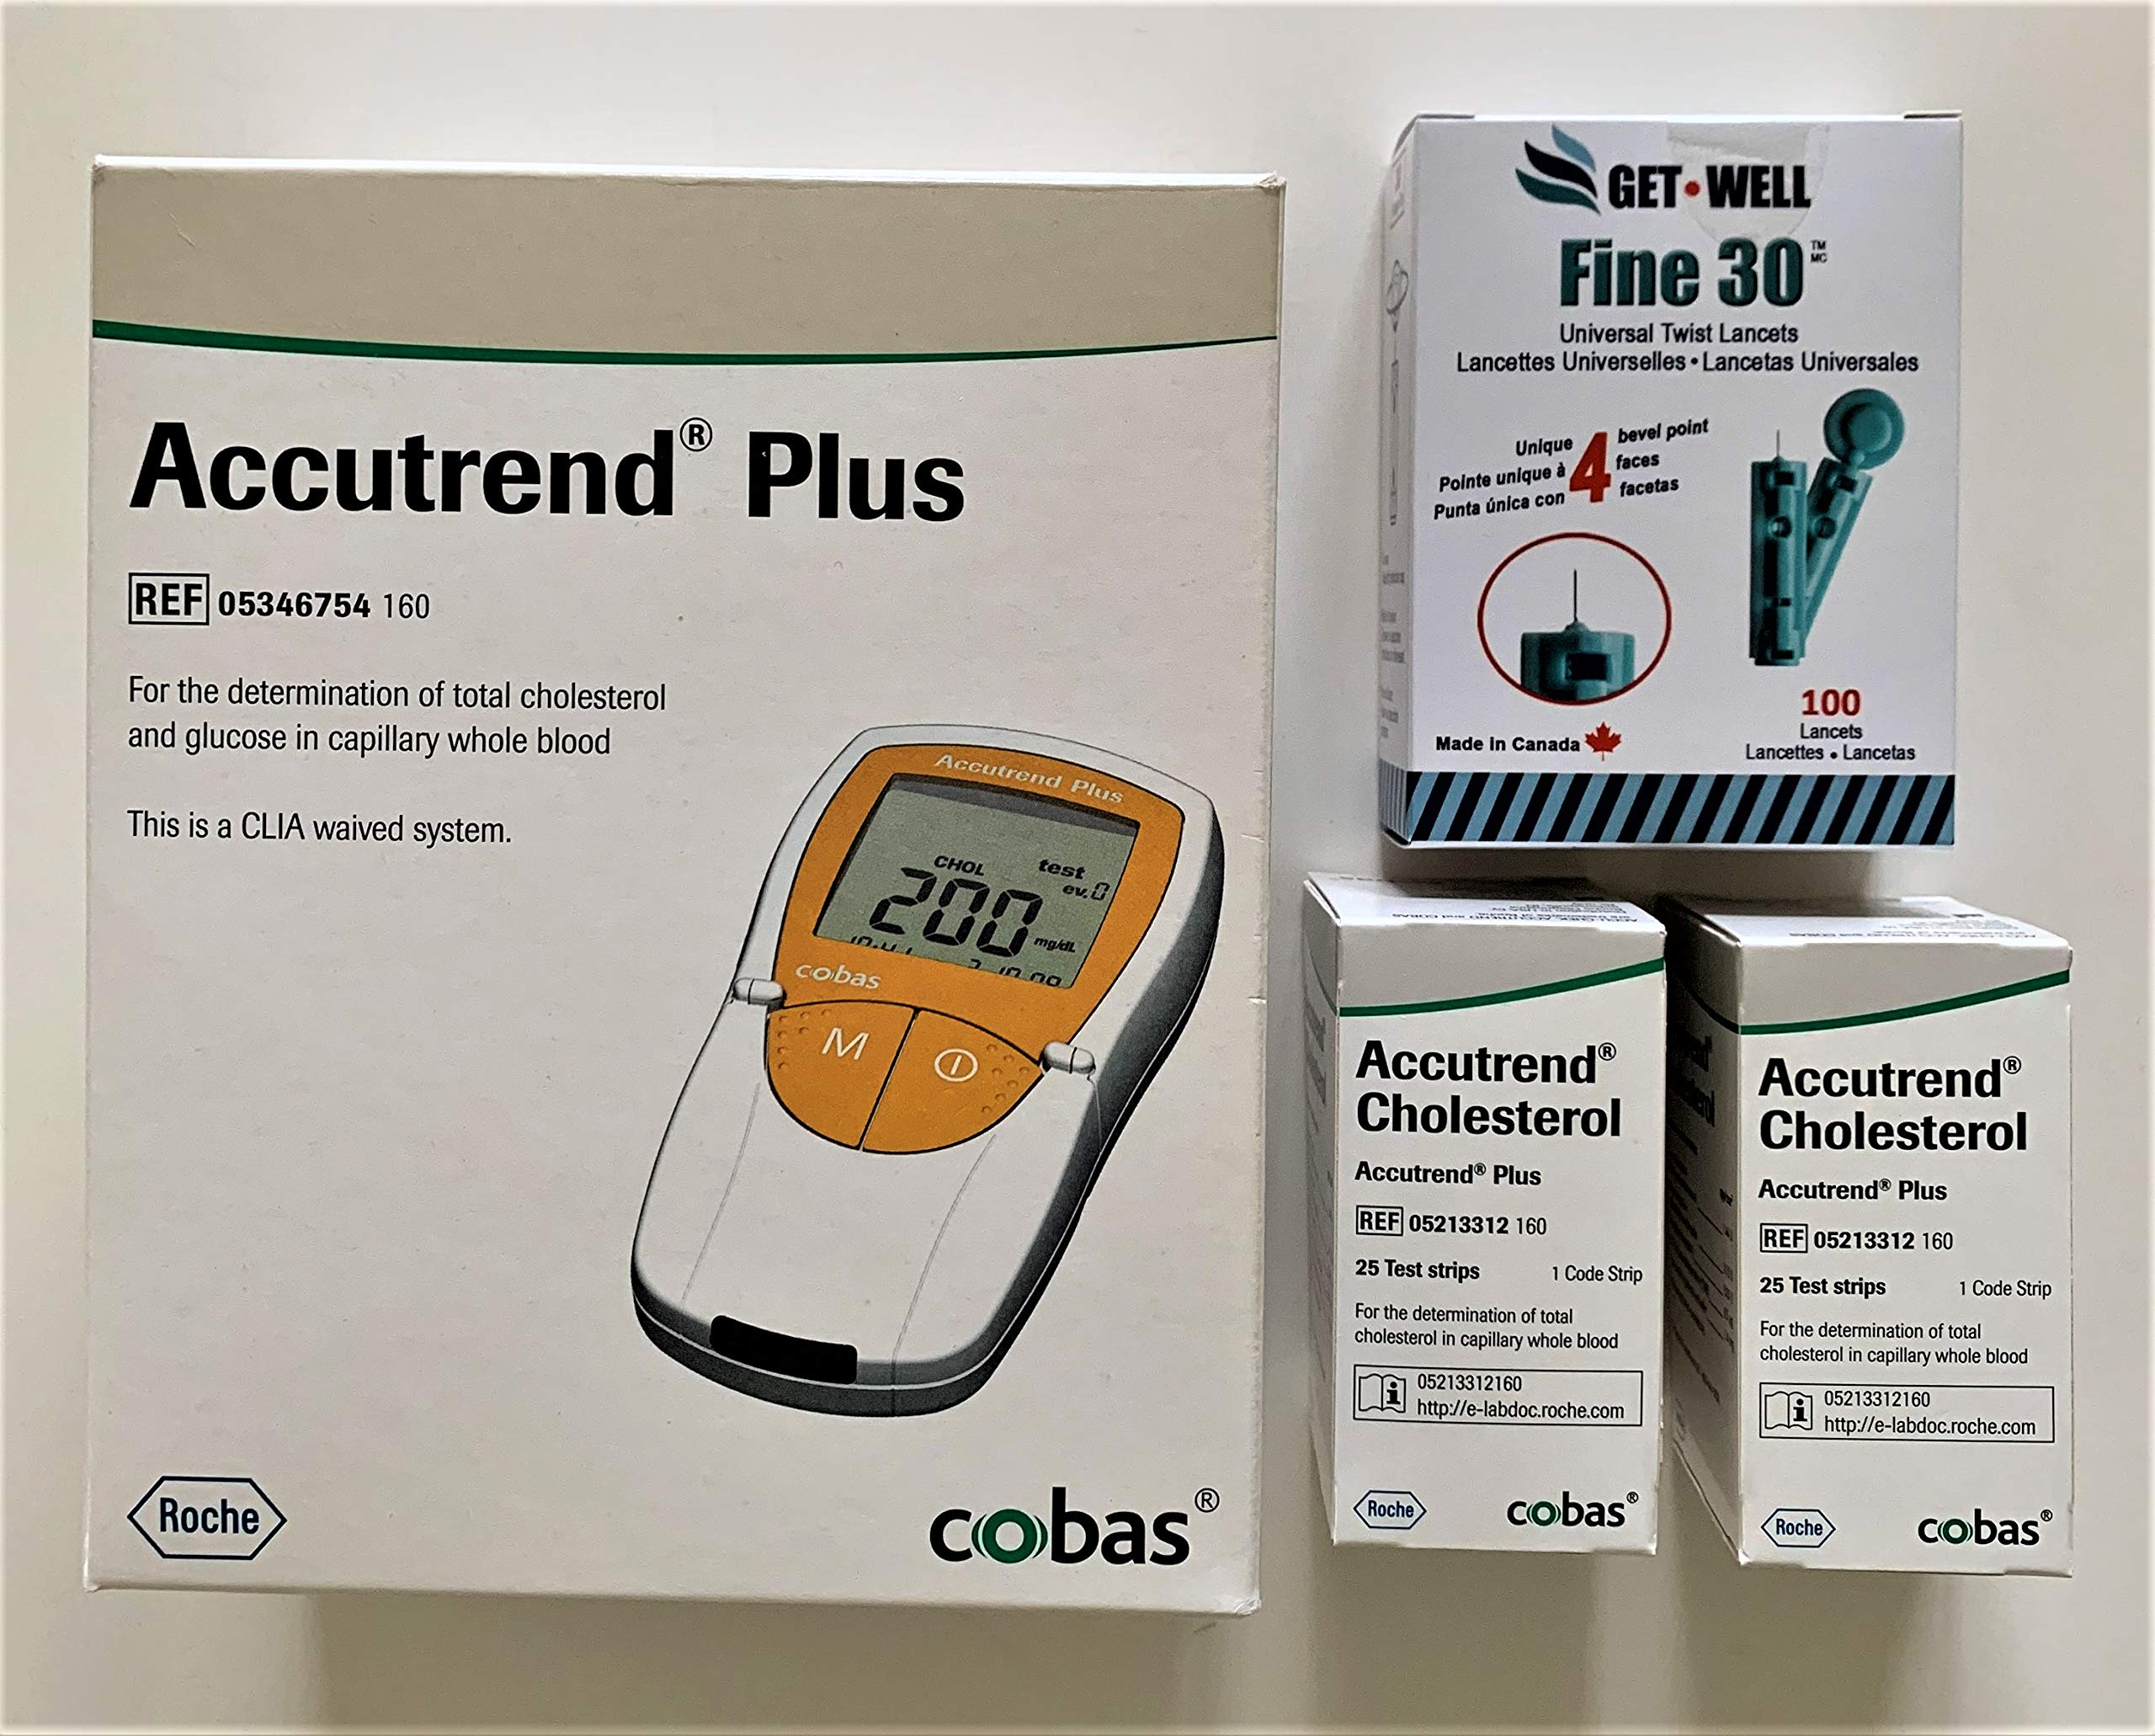 GET•WELL Fine 30g Universal Twist Lancets 100 Ct. - Made in Canada ! ACCUTREND Plus Meter REF 05346754160, 50 ACCUTREND Cholestrol Test Strips, Carrying Case & Lancing Device by Get Well